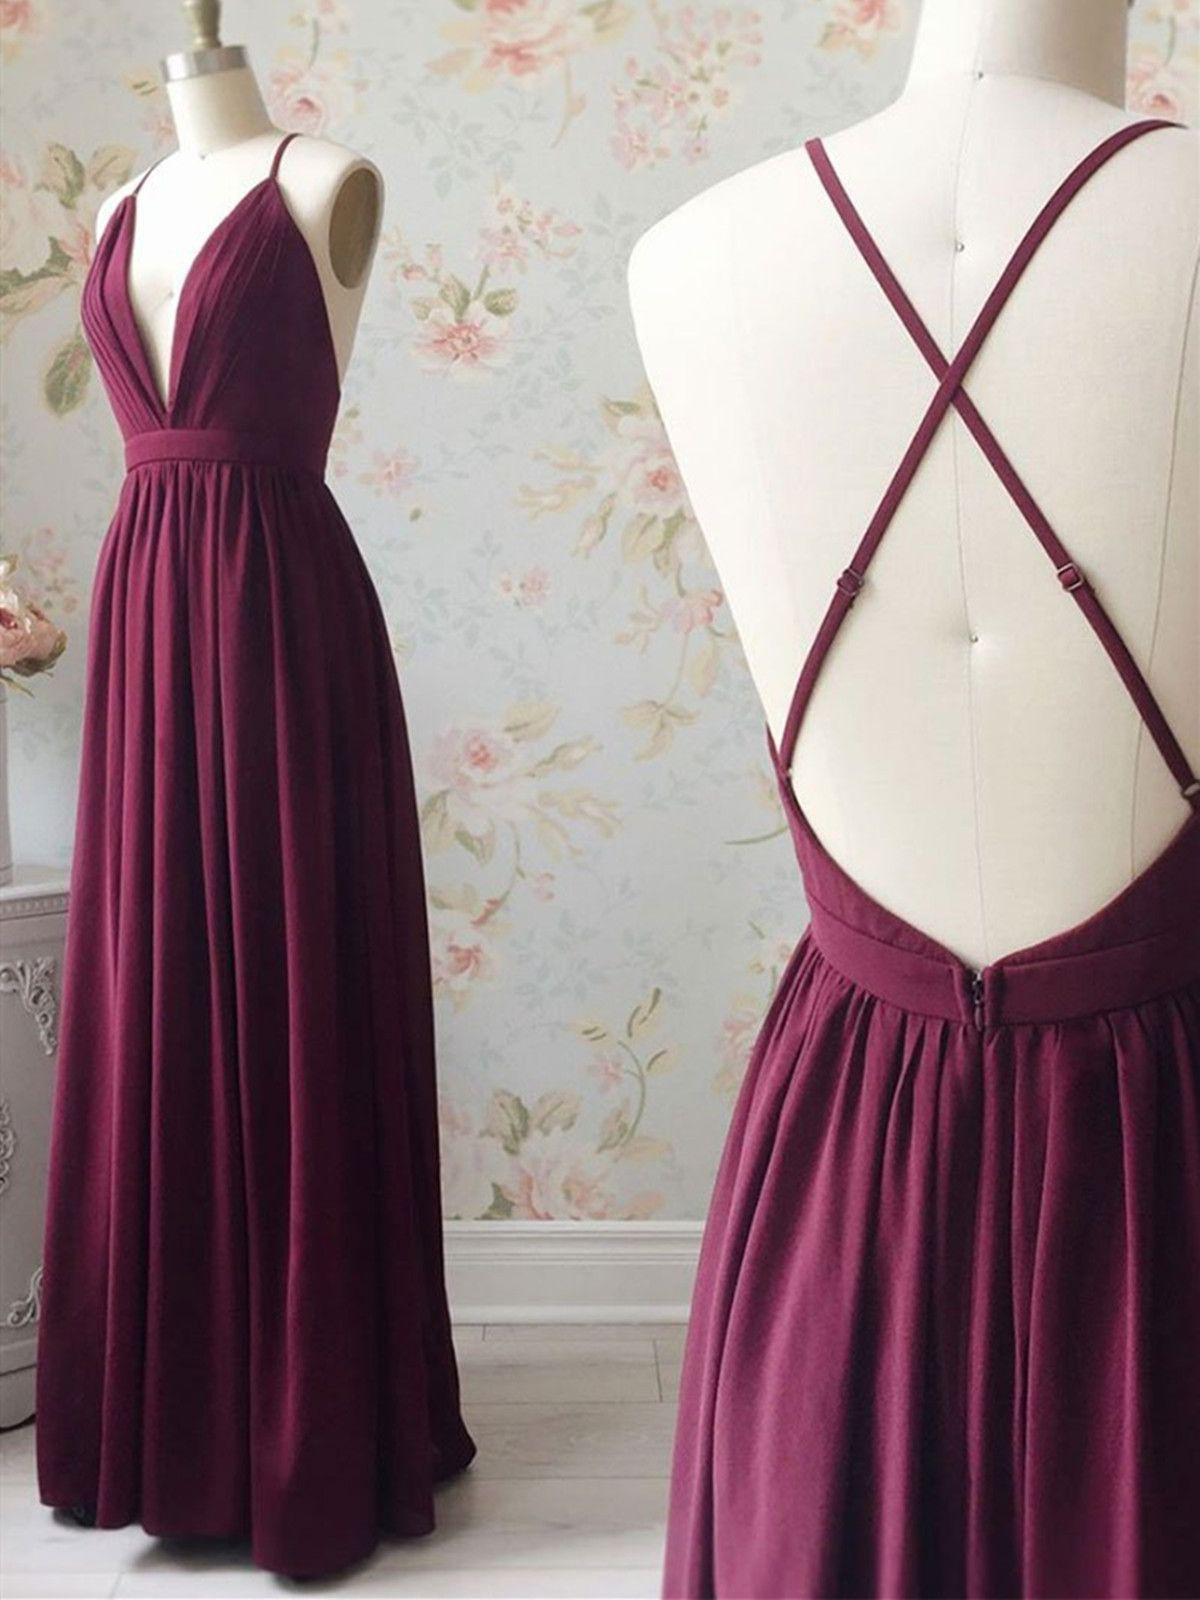 Purple outfit ideas with bridal party dress, bridesmaid dress, backless dress